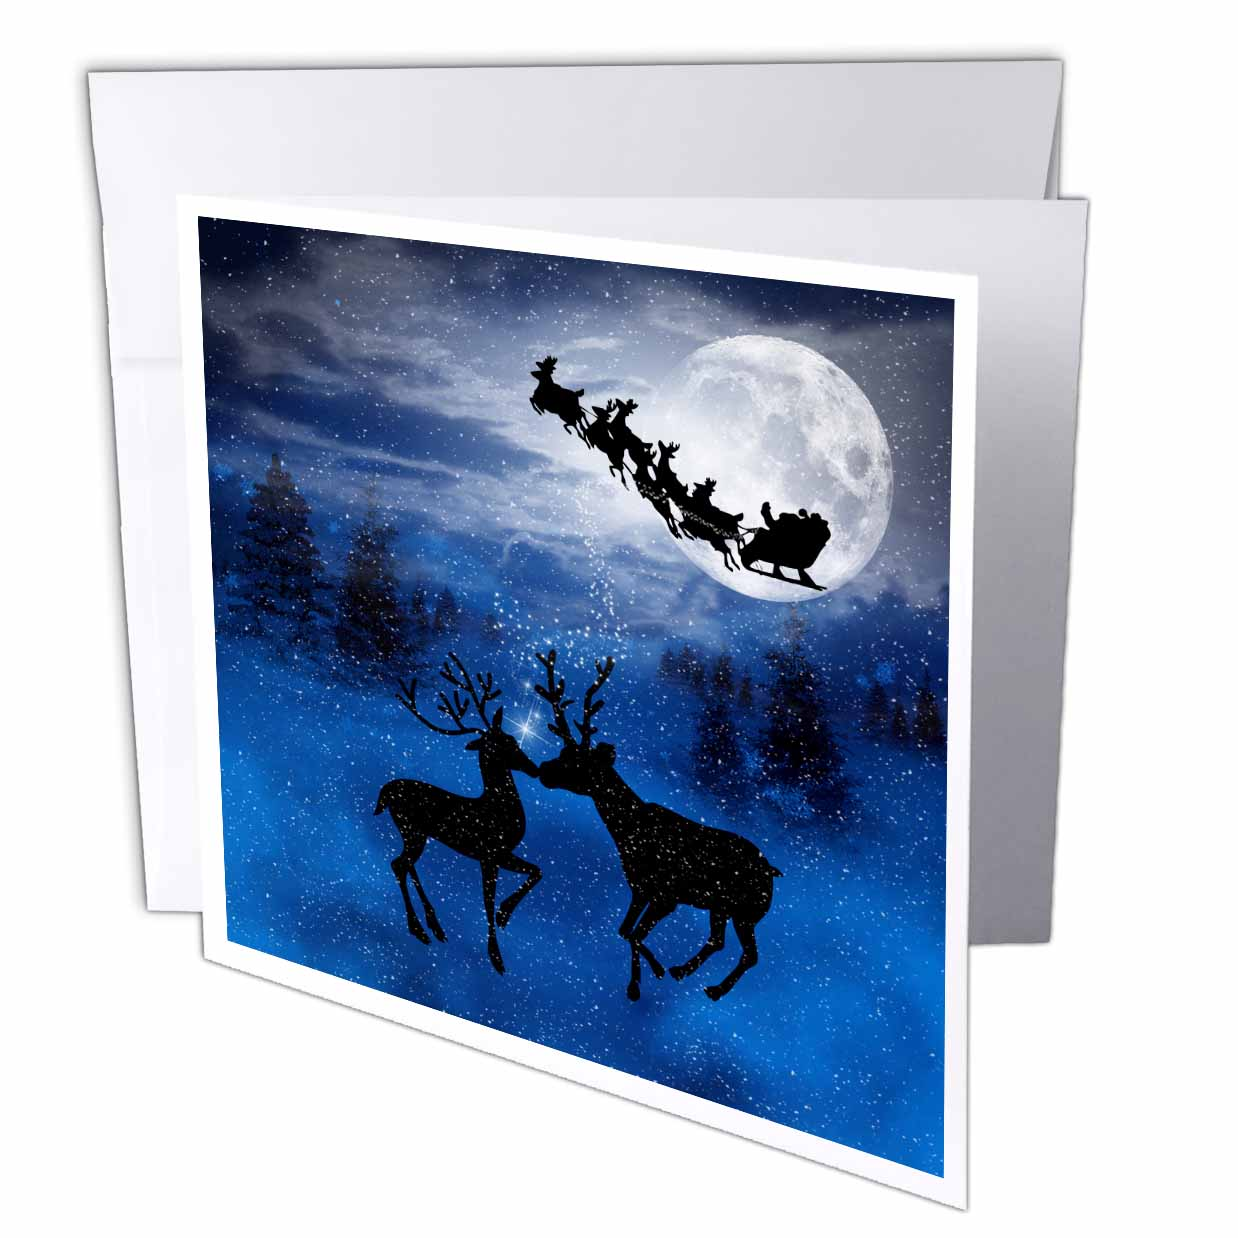 3dRose Romantic Christmas Reindeer Kissing in the Snow with a Winter Moon shining on the Forest, Greeting Cards, 6 x 6 inches, set of 12